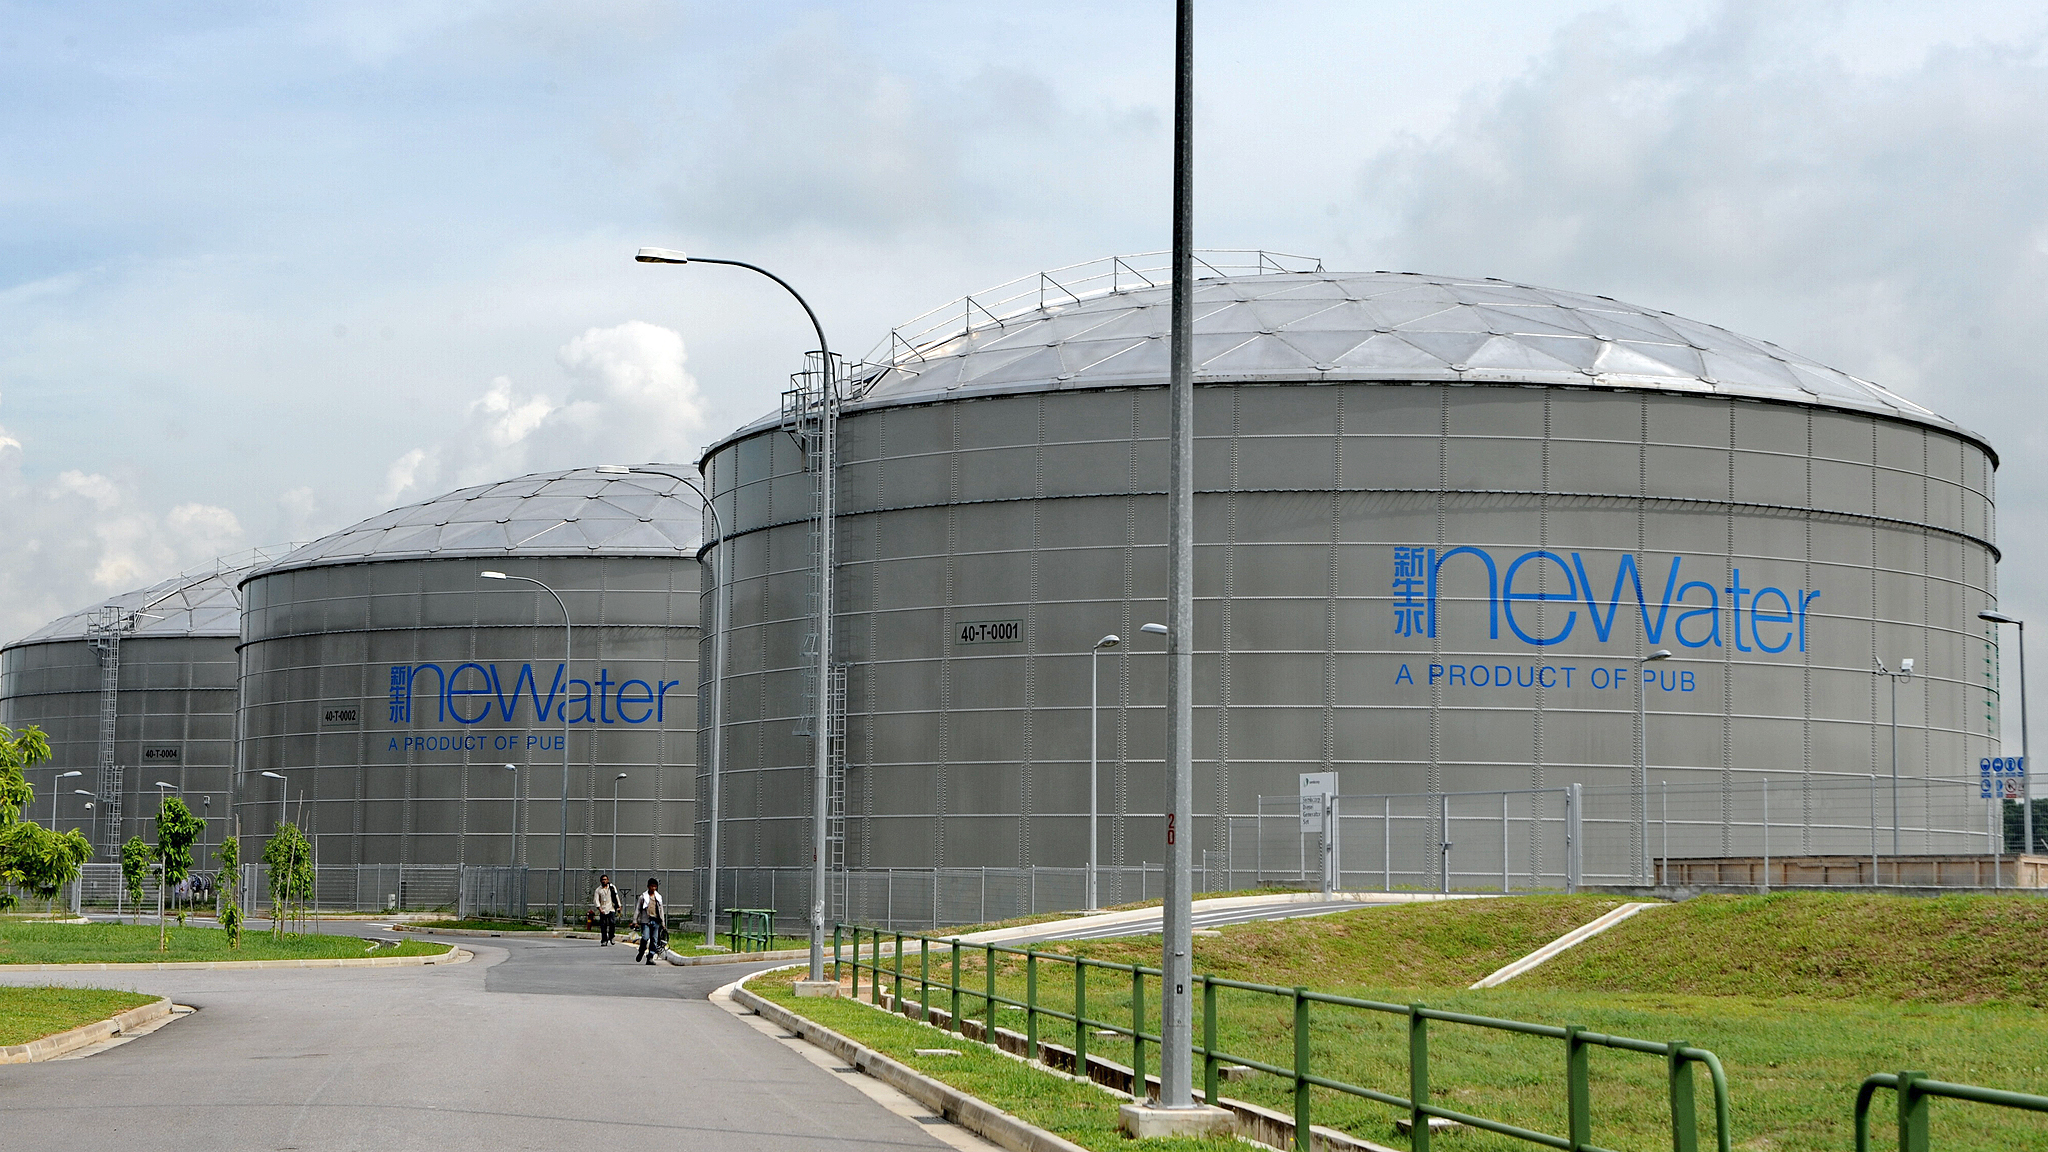 Singapore seeks sustainable water supply | Financial Times